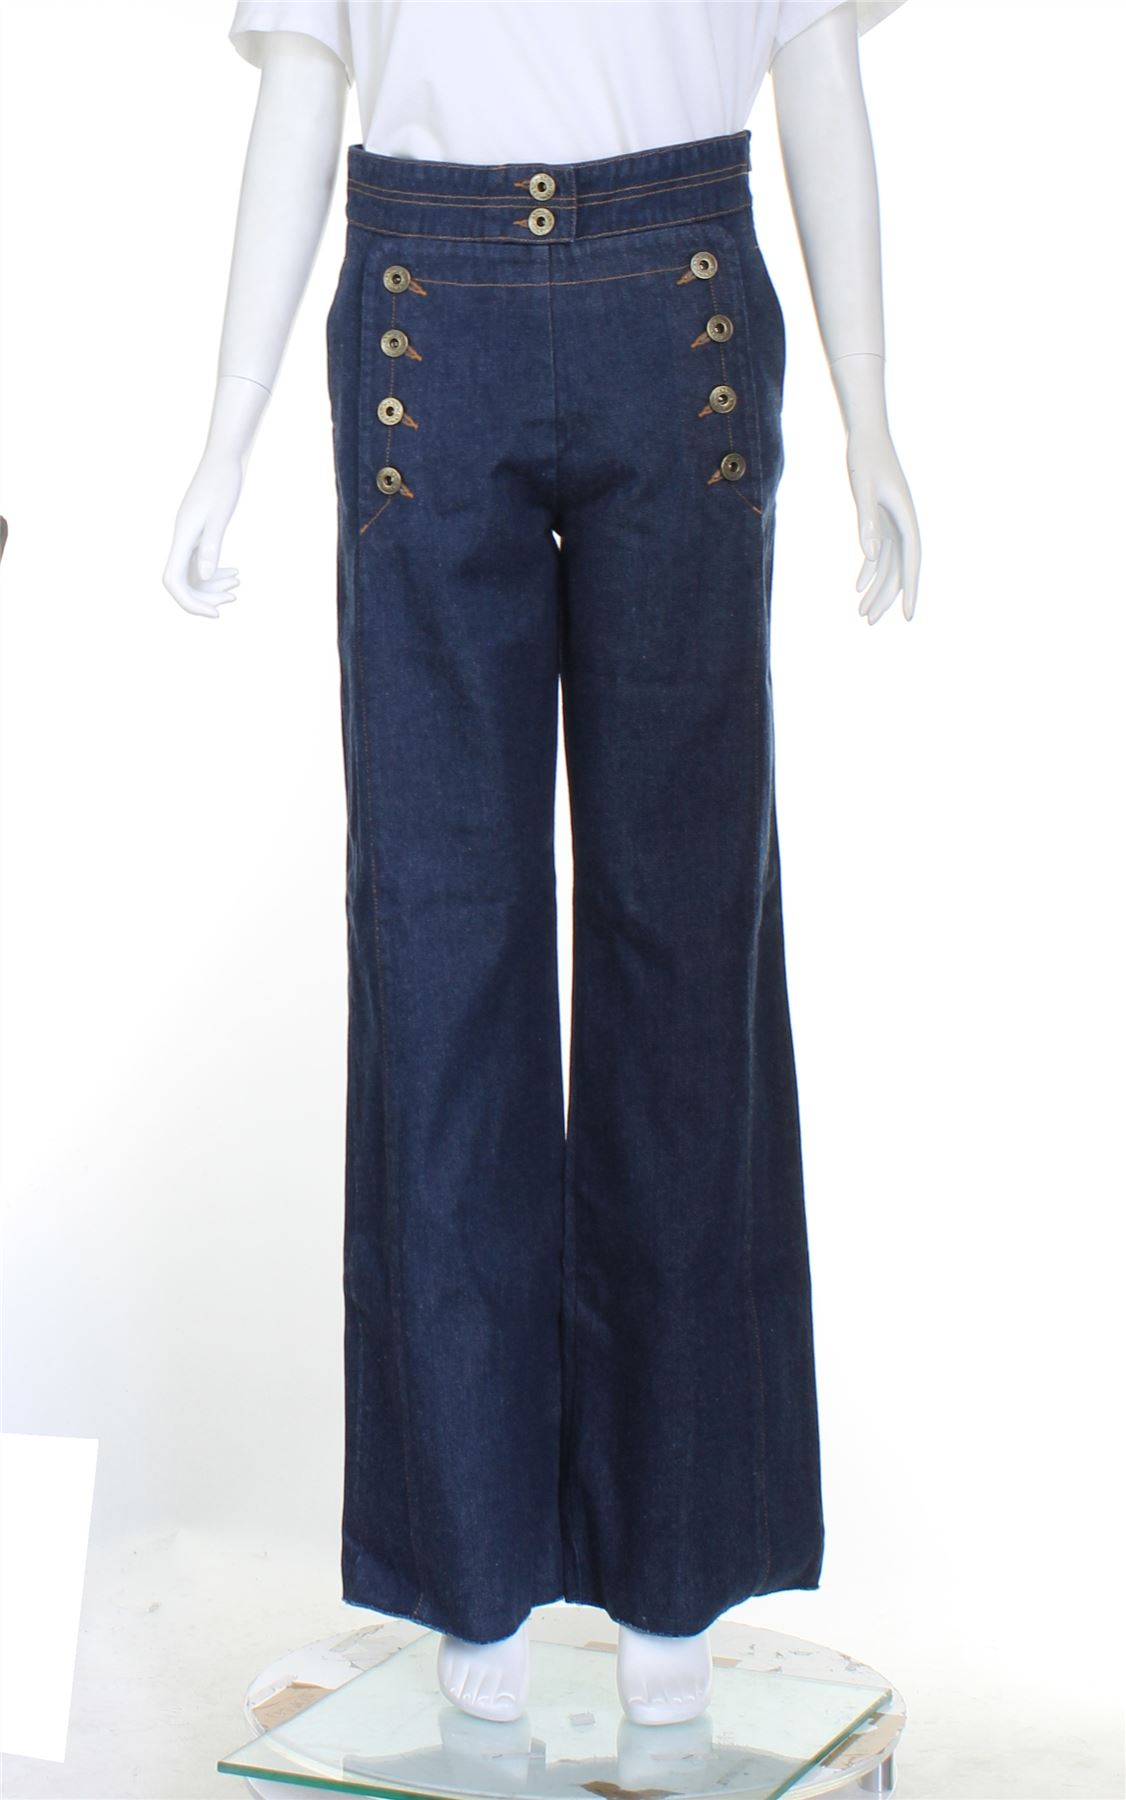 100% Vero ChloÉ Navy Blue Denim Jeans High Rise, Uk 8 Us 4 Eu 36 Squisita (In) Esecuzione